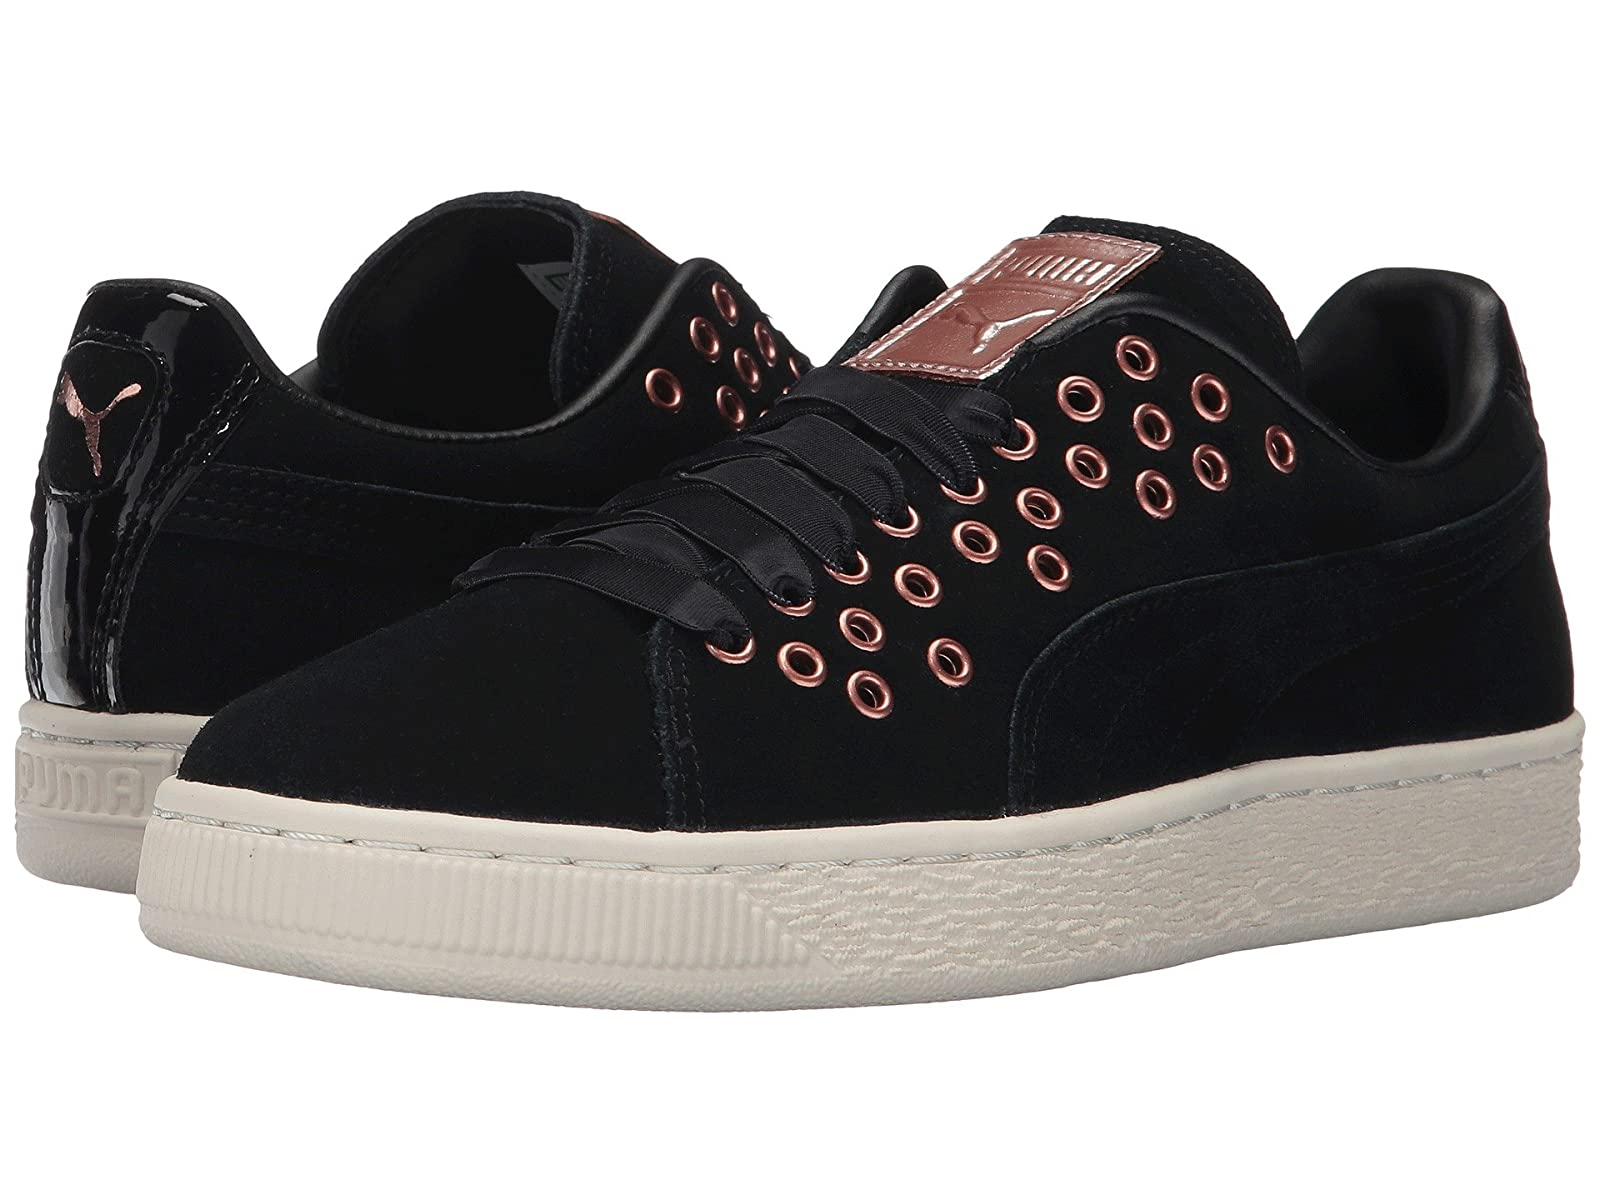 PUMA Suede XL Lace VRCheap and distinctive eye-catching shoes